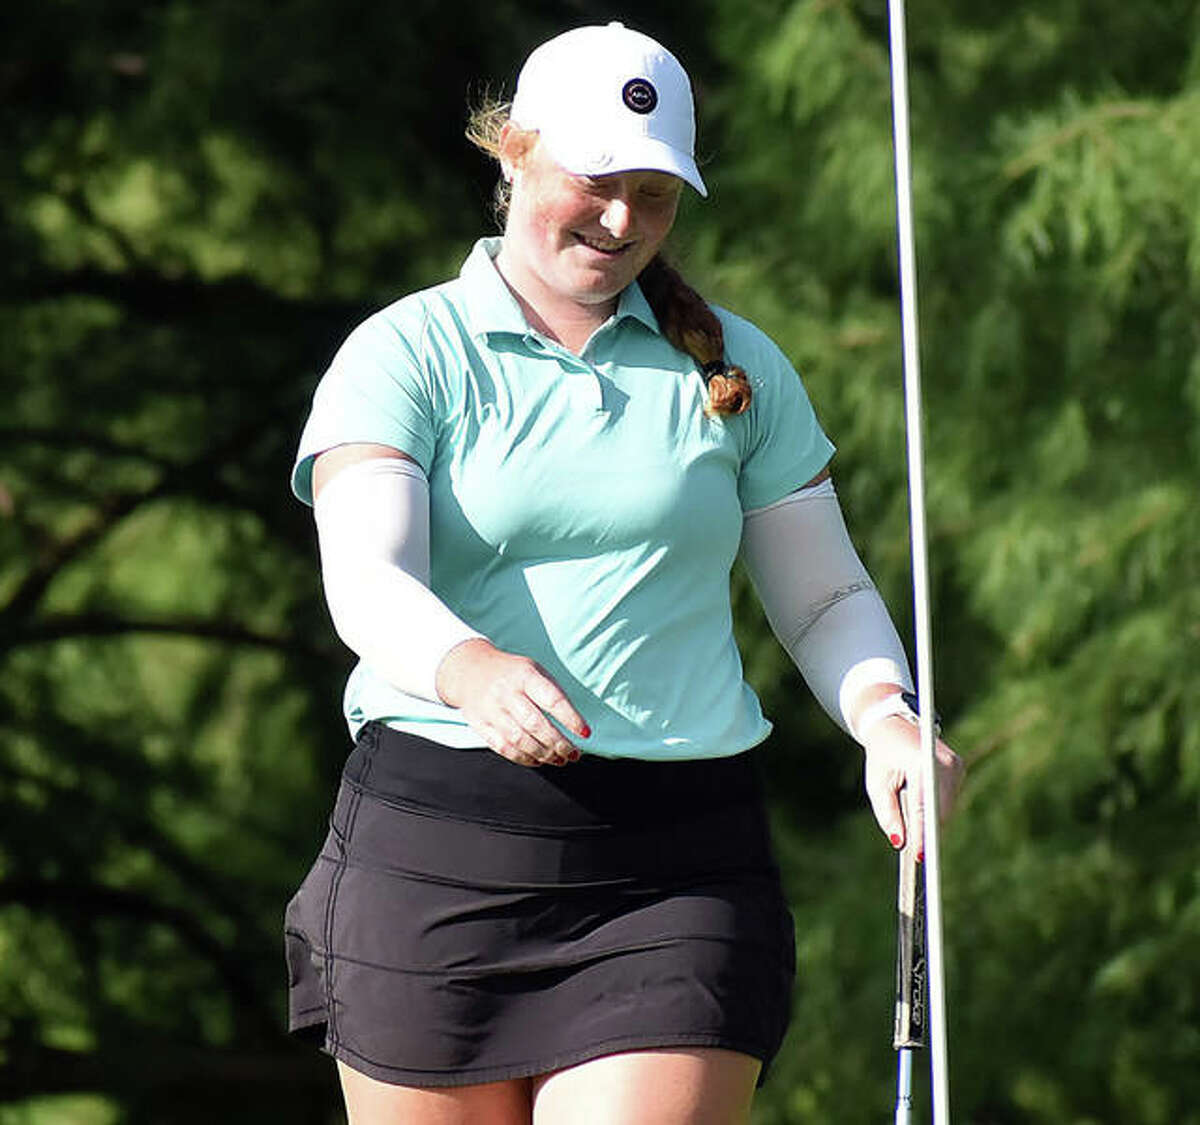 East Alton's Gracie Piar, a junior at Marquette Catholic, reacts after sinking a 20-foot putt for eagle on hole No. 11 in Monday's opening round at the 41st Illinois State Junior Girls Championship at Hickory Point Golf Course in Forsyth. Piar placed fifth with rounds of 71-74.